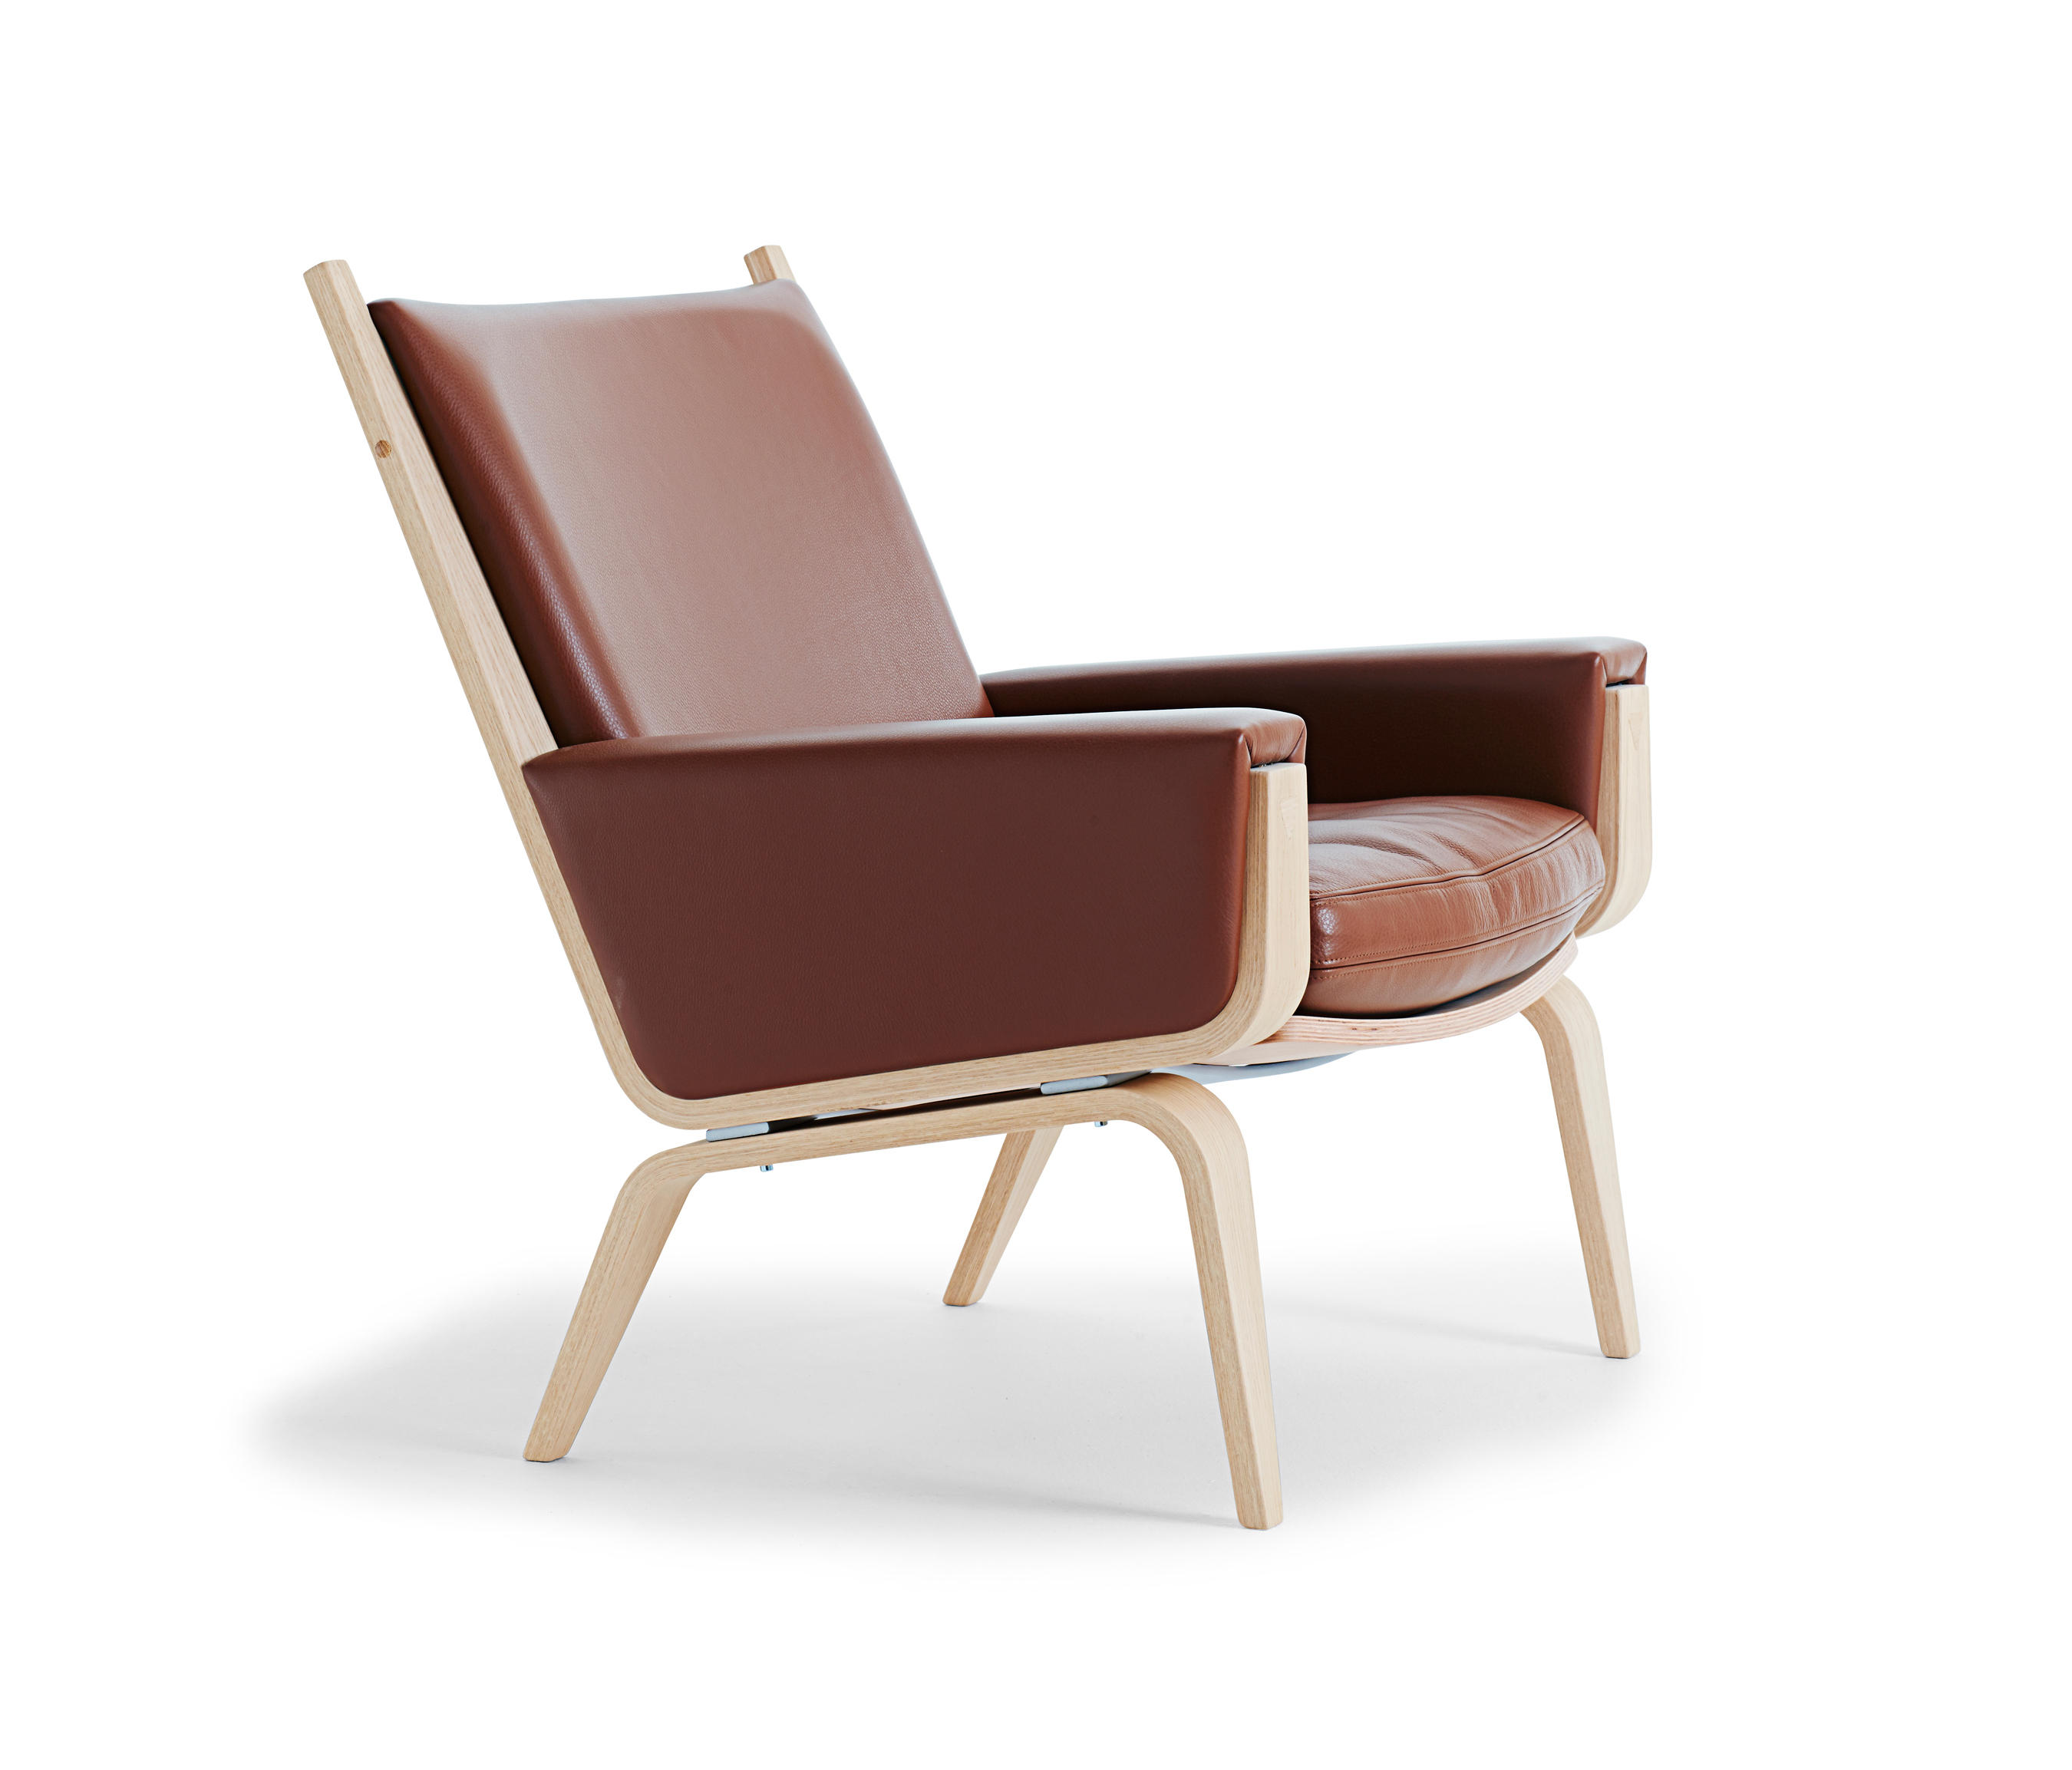 GE 501 EASY CHAIR Lounge chairs from Getama Danmark